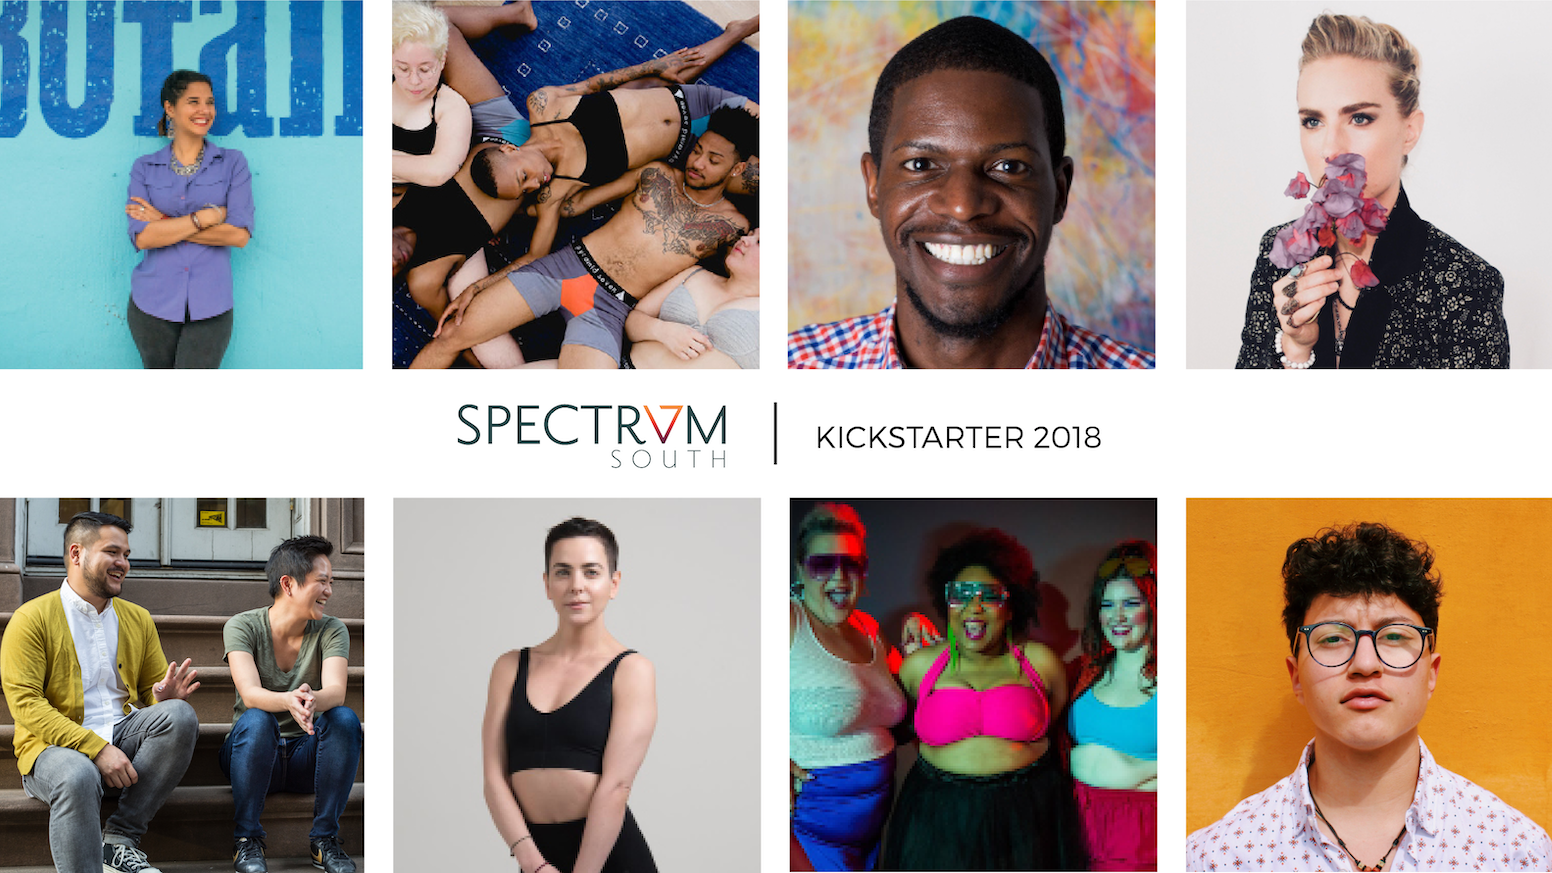 Spectrum South: An Online LGBTQ Magazine for the South